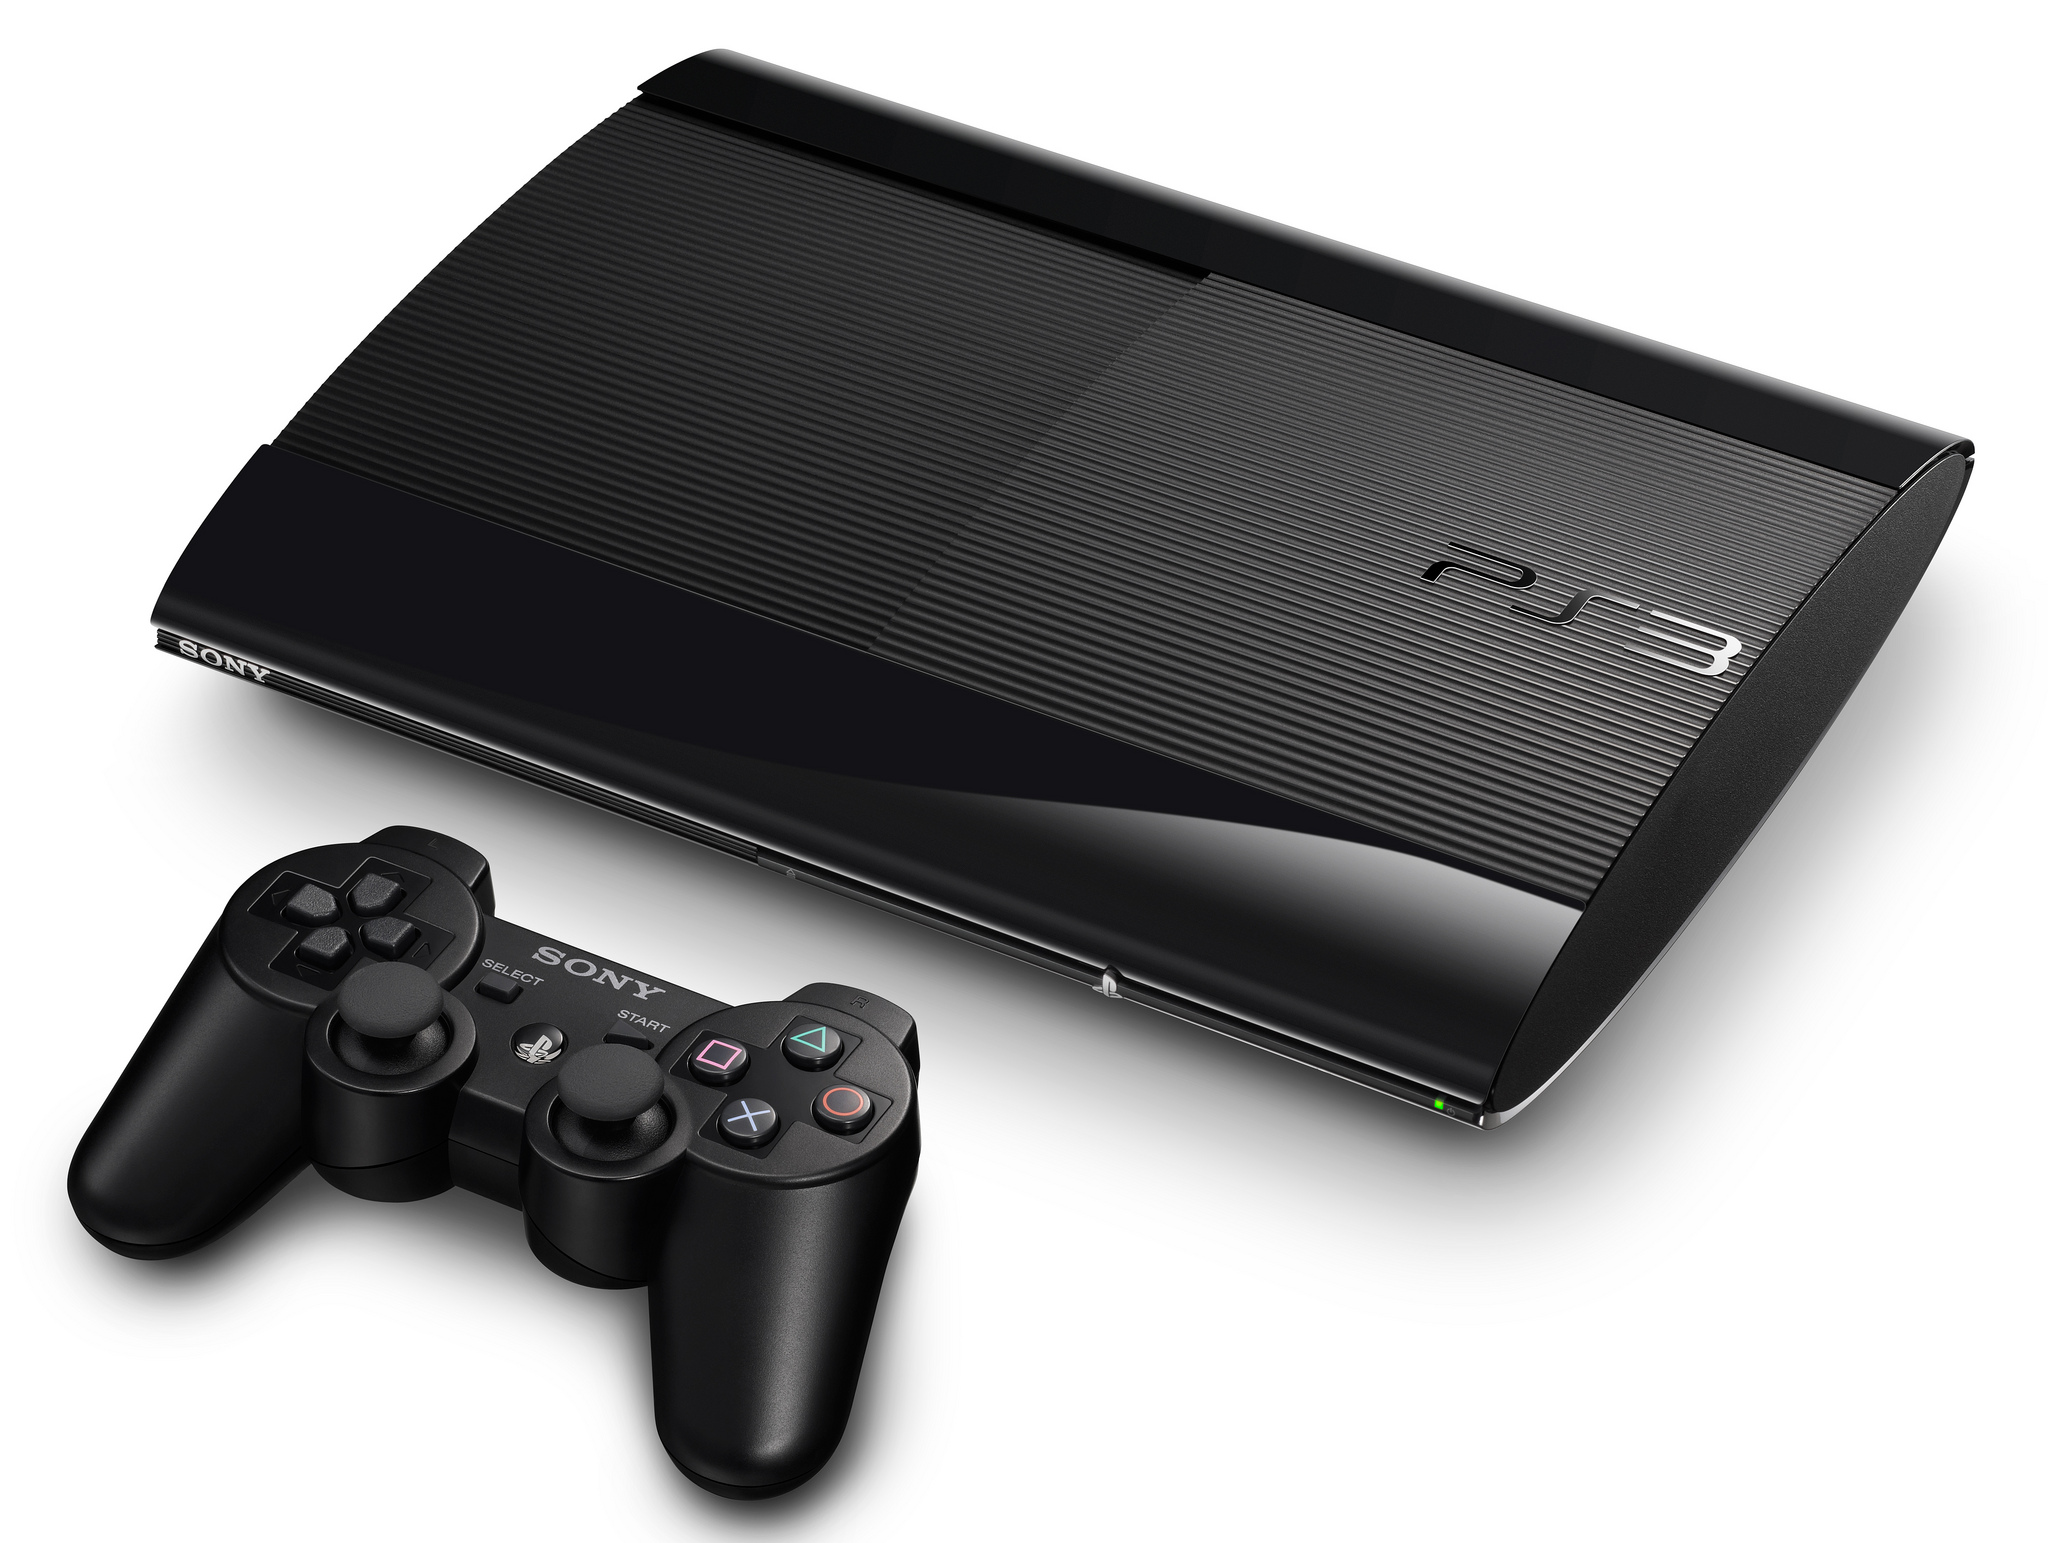 01_Playstation System Comparison_PS3